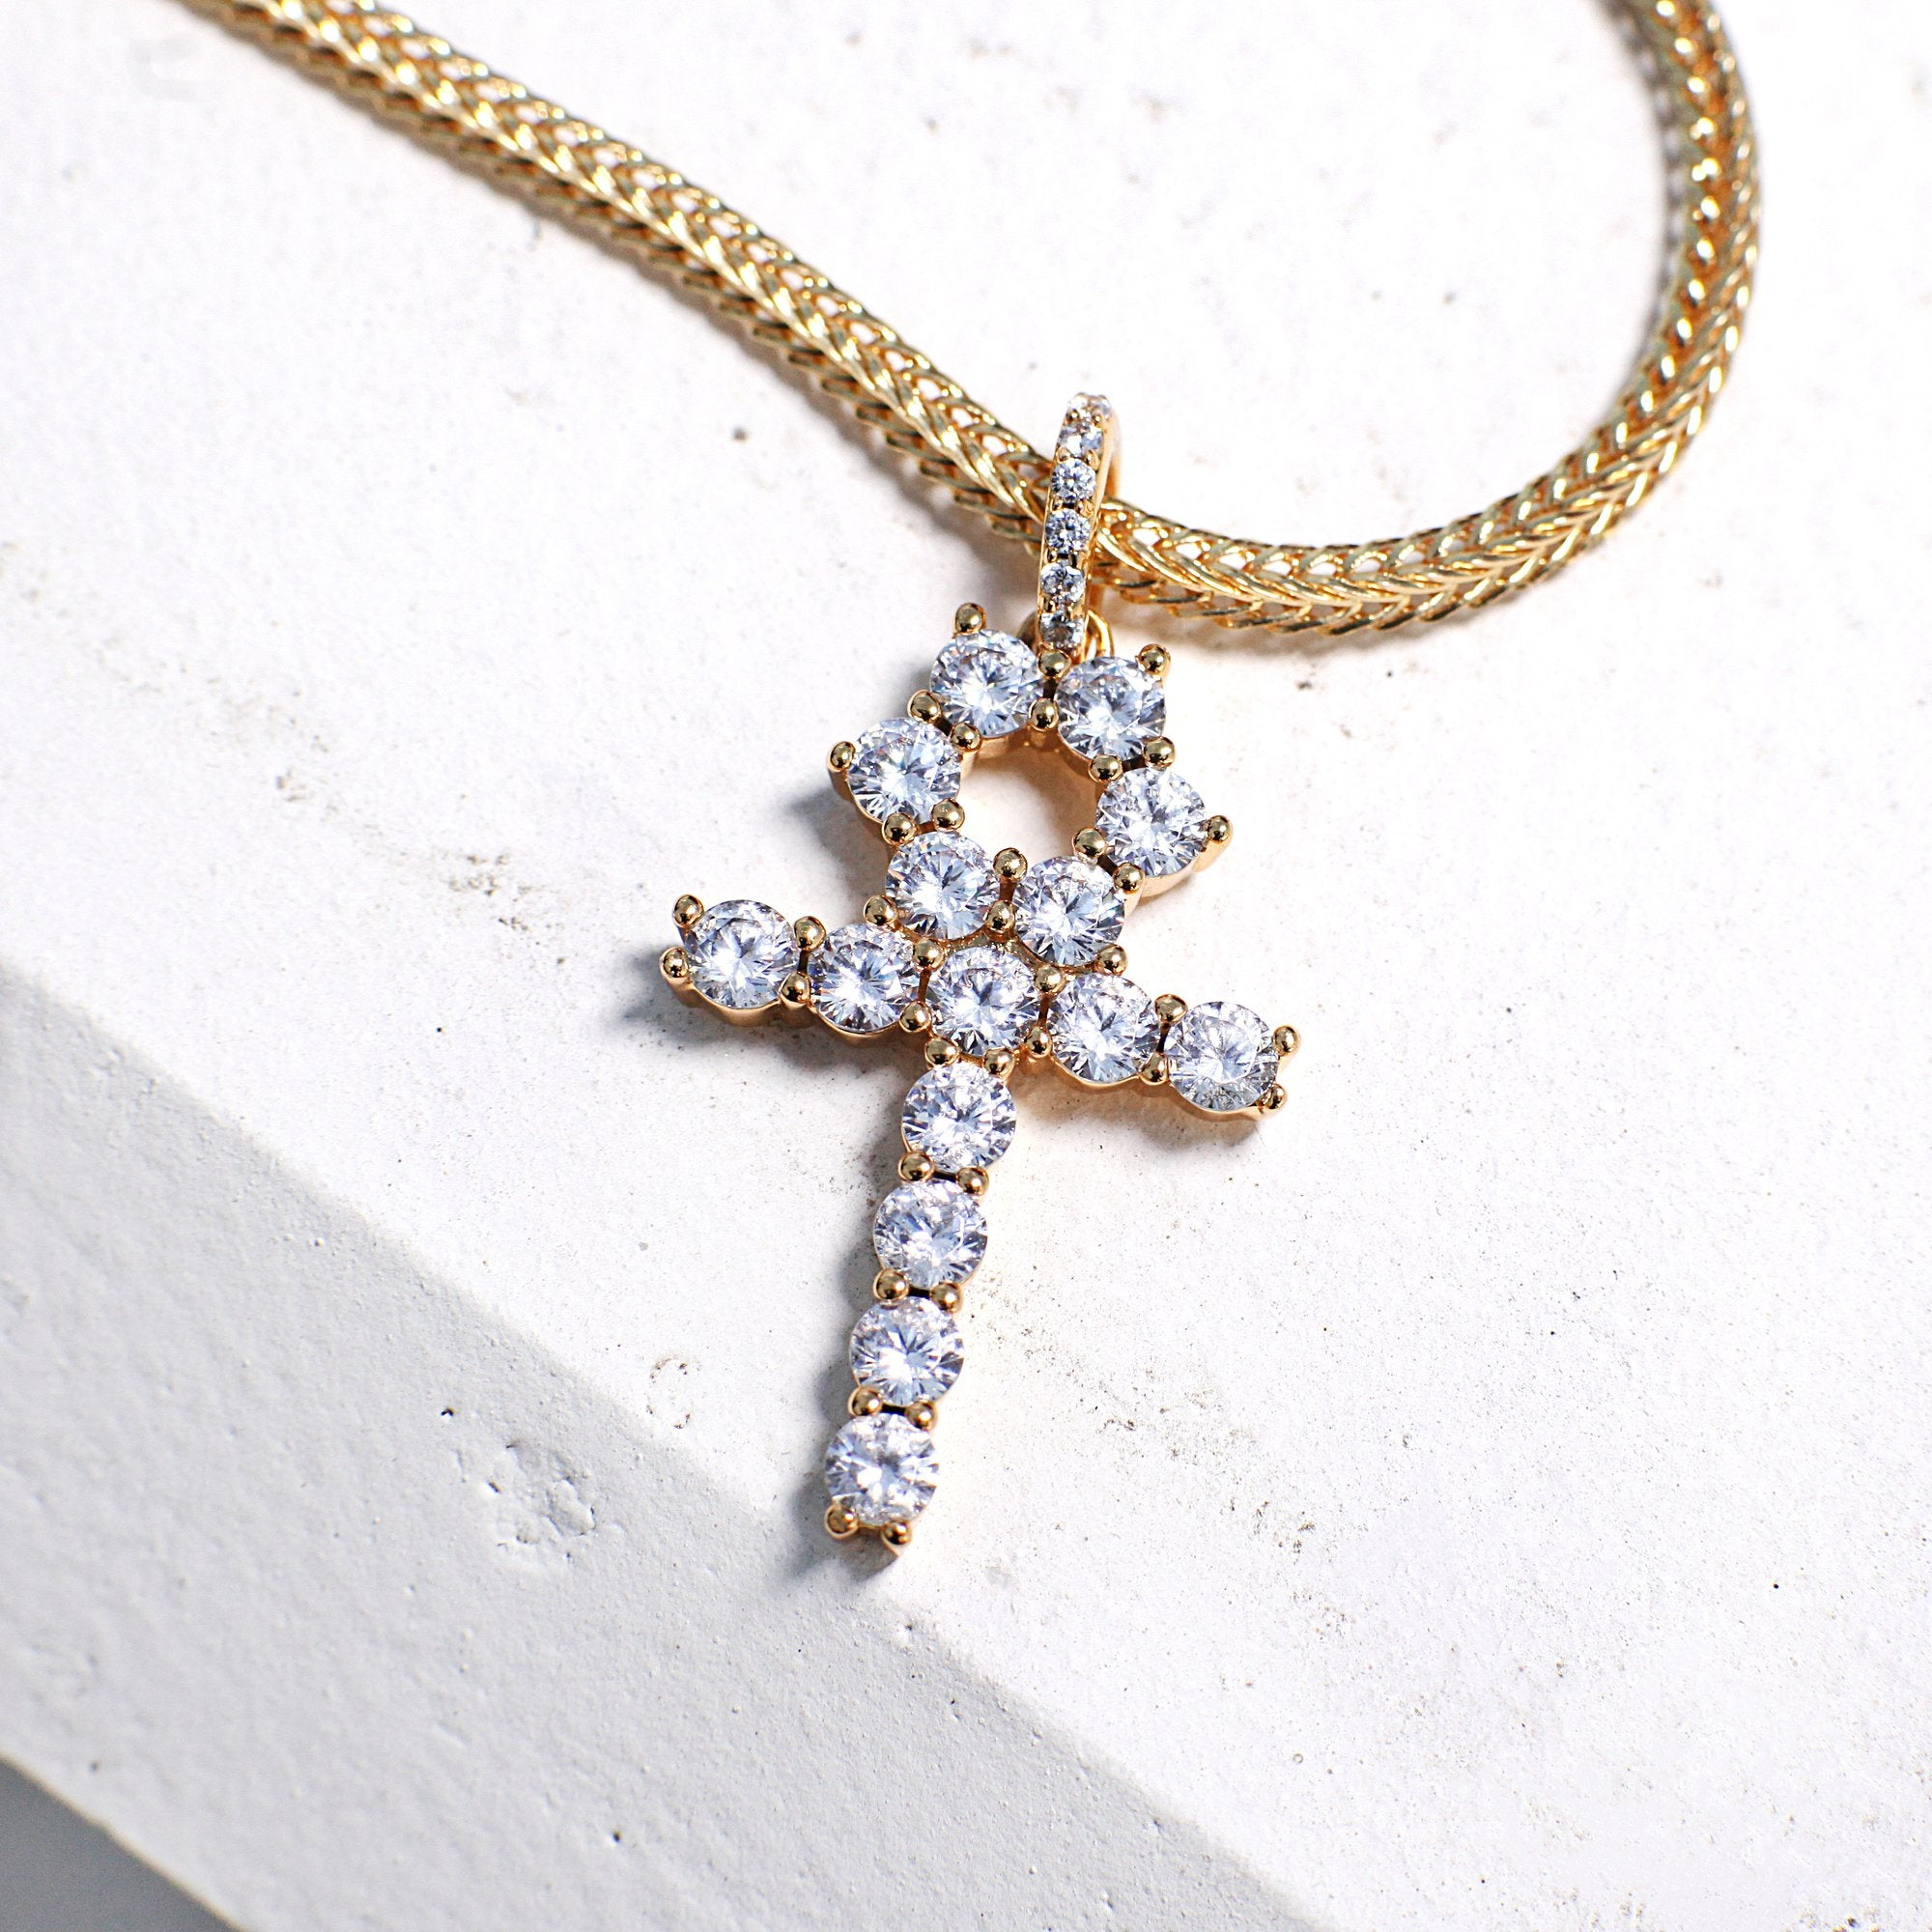 Iced out ankh pendant zanura iced out ankh pendant mozeypictures Image collections